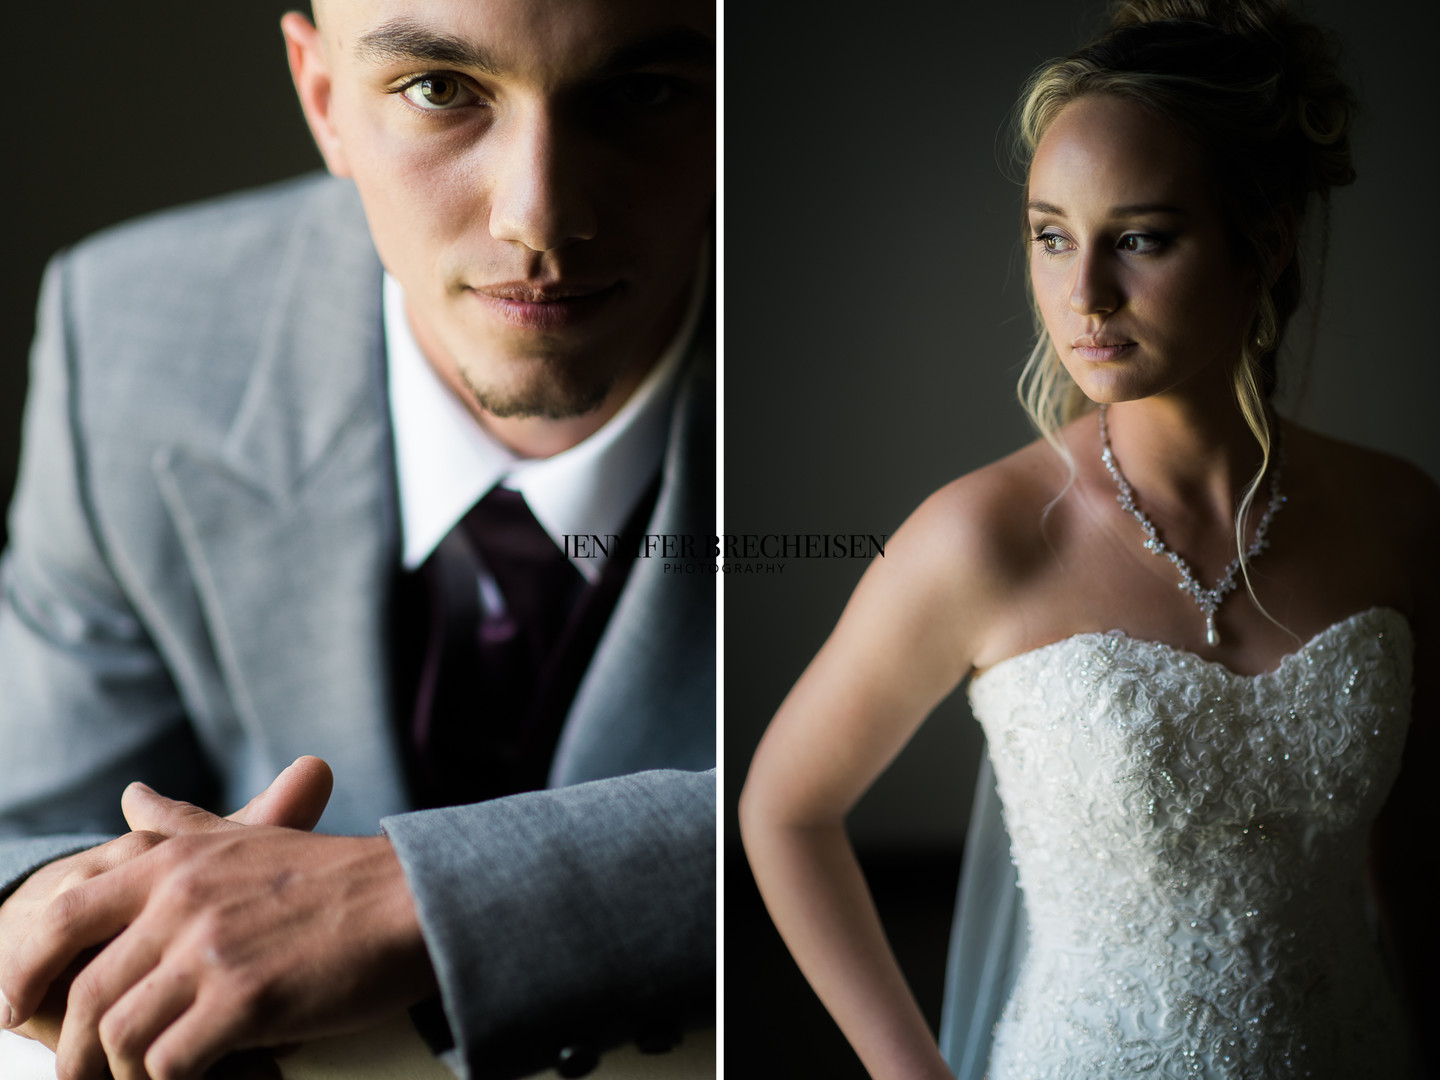 tyler and haley color 2-1.jpg